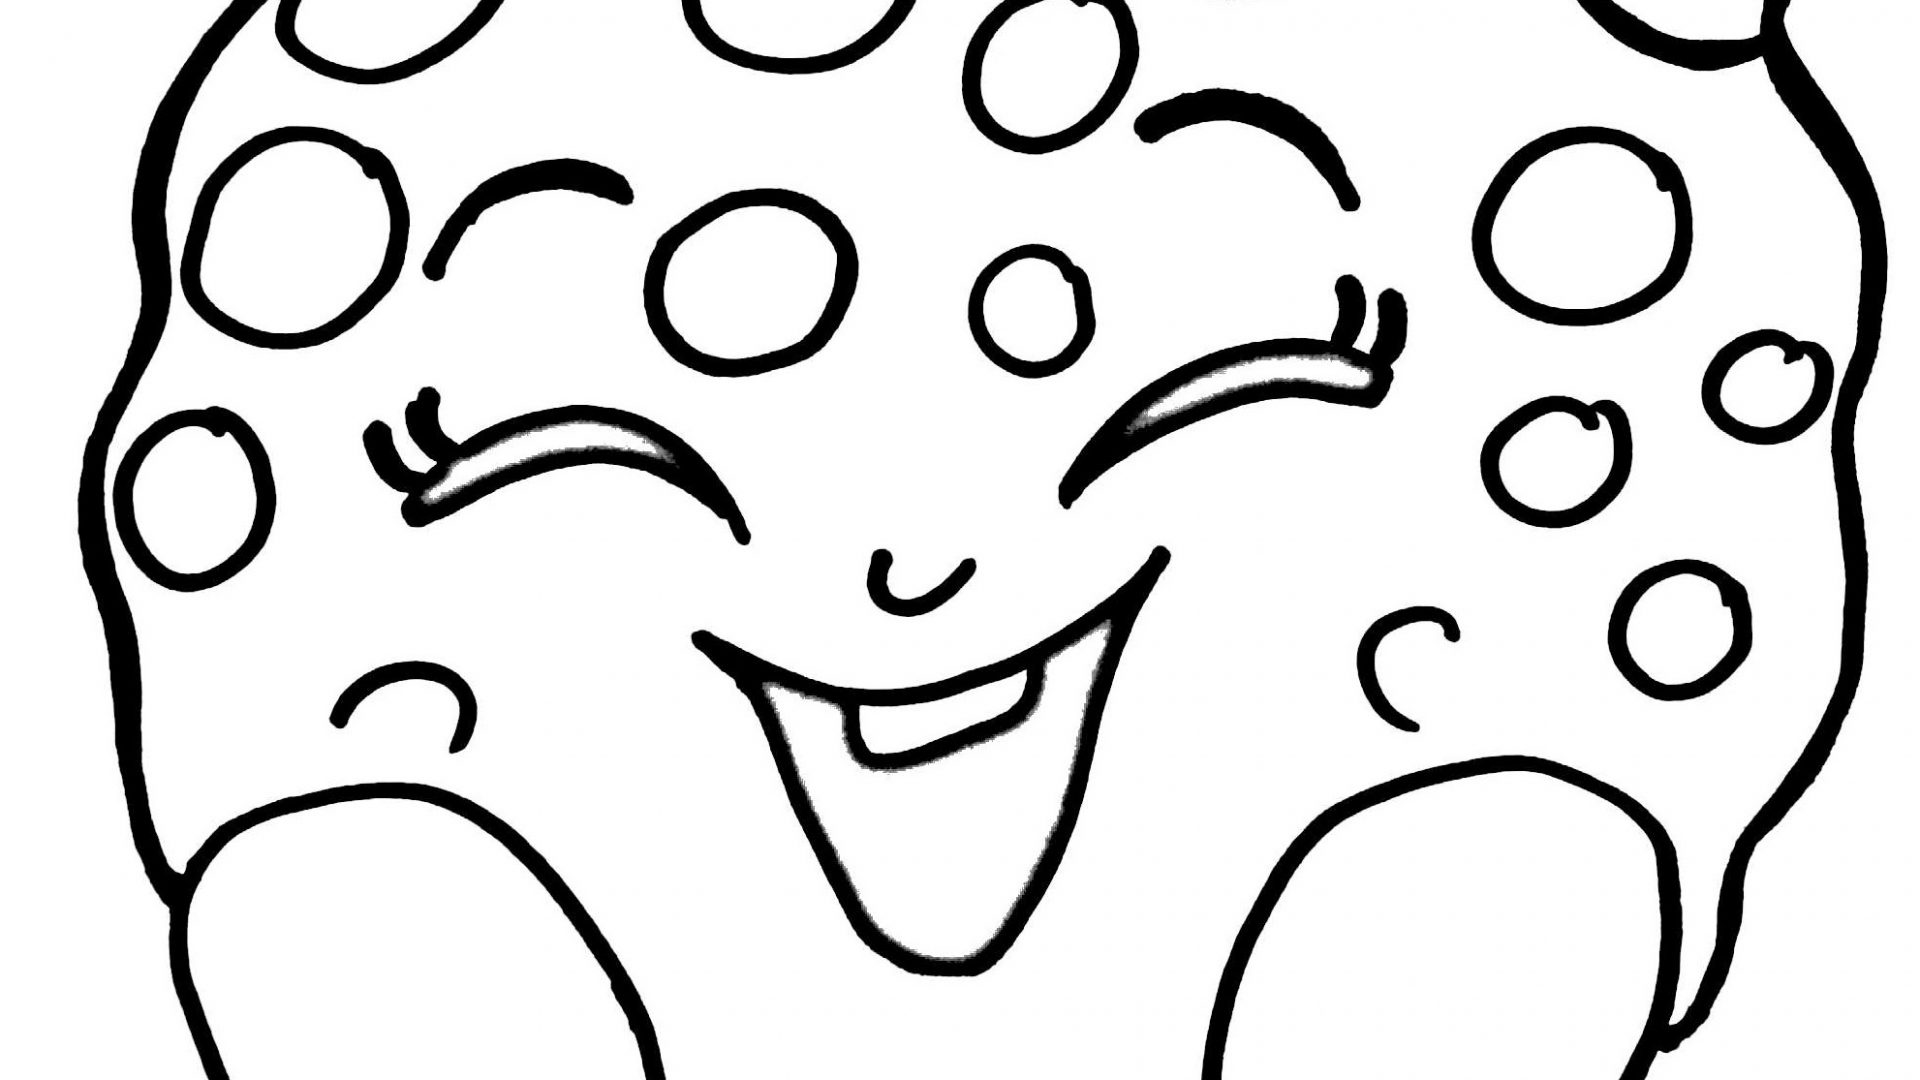 girl scout cookie coloring pages girl scouts cookie coloring page camping coloring pages girl pages scout cookie coloring